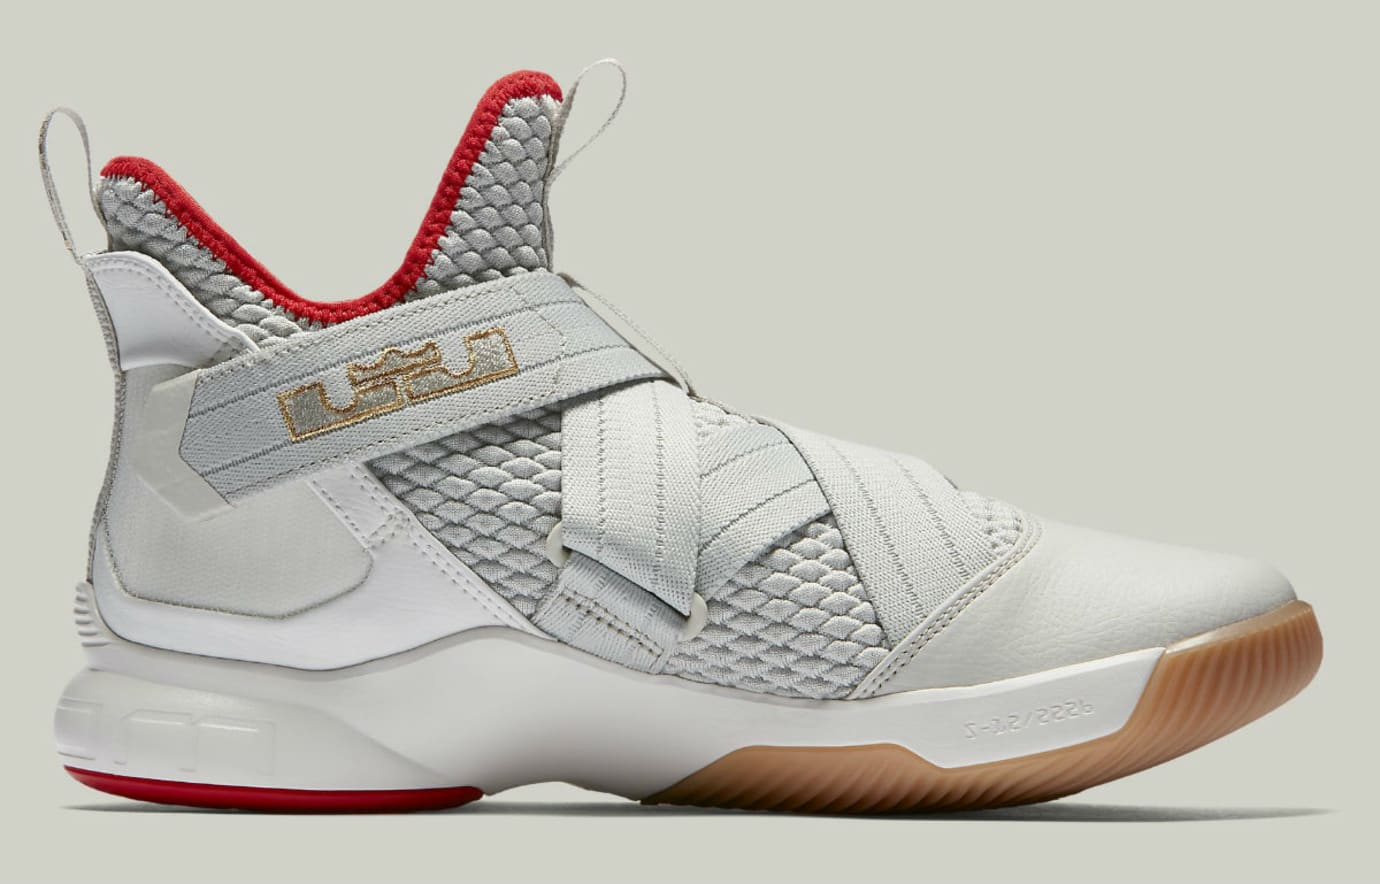 f535e466a6b5 02588 8941a  netherlands nike lebron soldier 12 yeezy release date ao2609  002 medial a1651 f339d